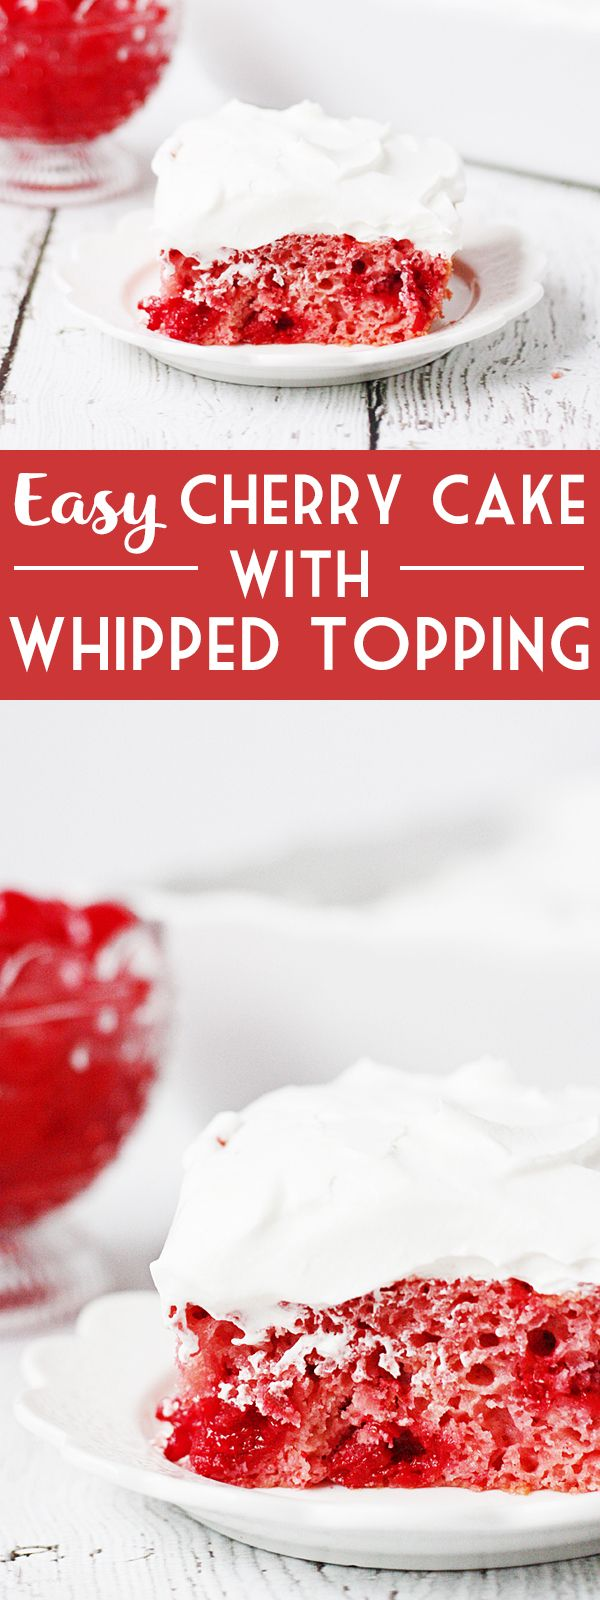 Easy Cherry Cake with Whipped Topping -- This easy cherry cake with whipped topping is unbelievably delicious and requires only a white cake mix, cherry pie filling, and three other ingredients. The whipped topping frosting is a fabulous finishing touch! | halfscratched.com #recipe #cake #valentinesday